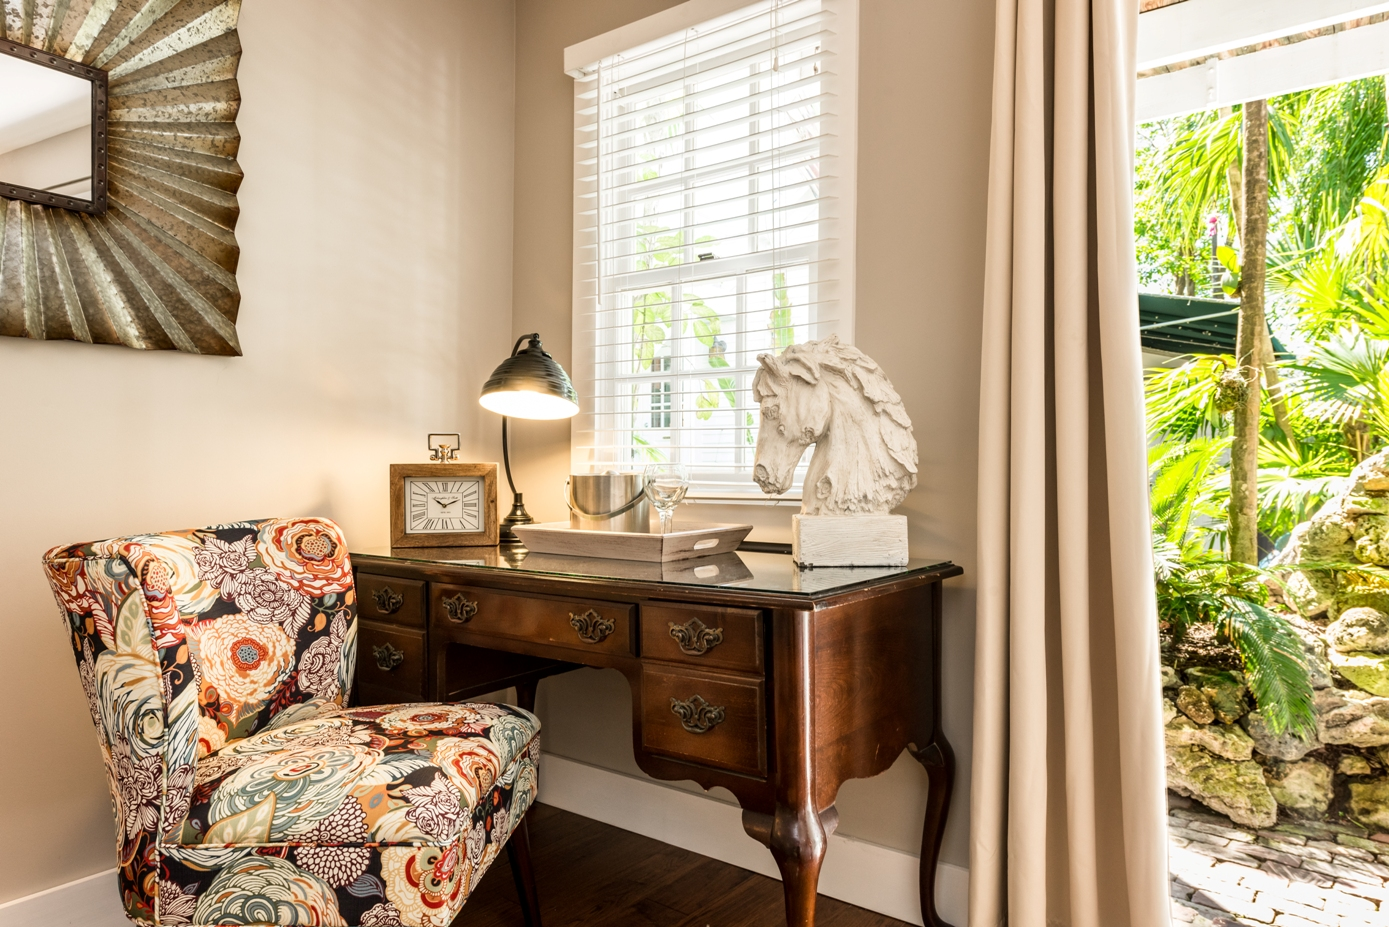 Key West Lodging - Saratoga Suite at Old Town Manor